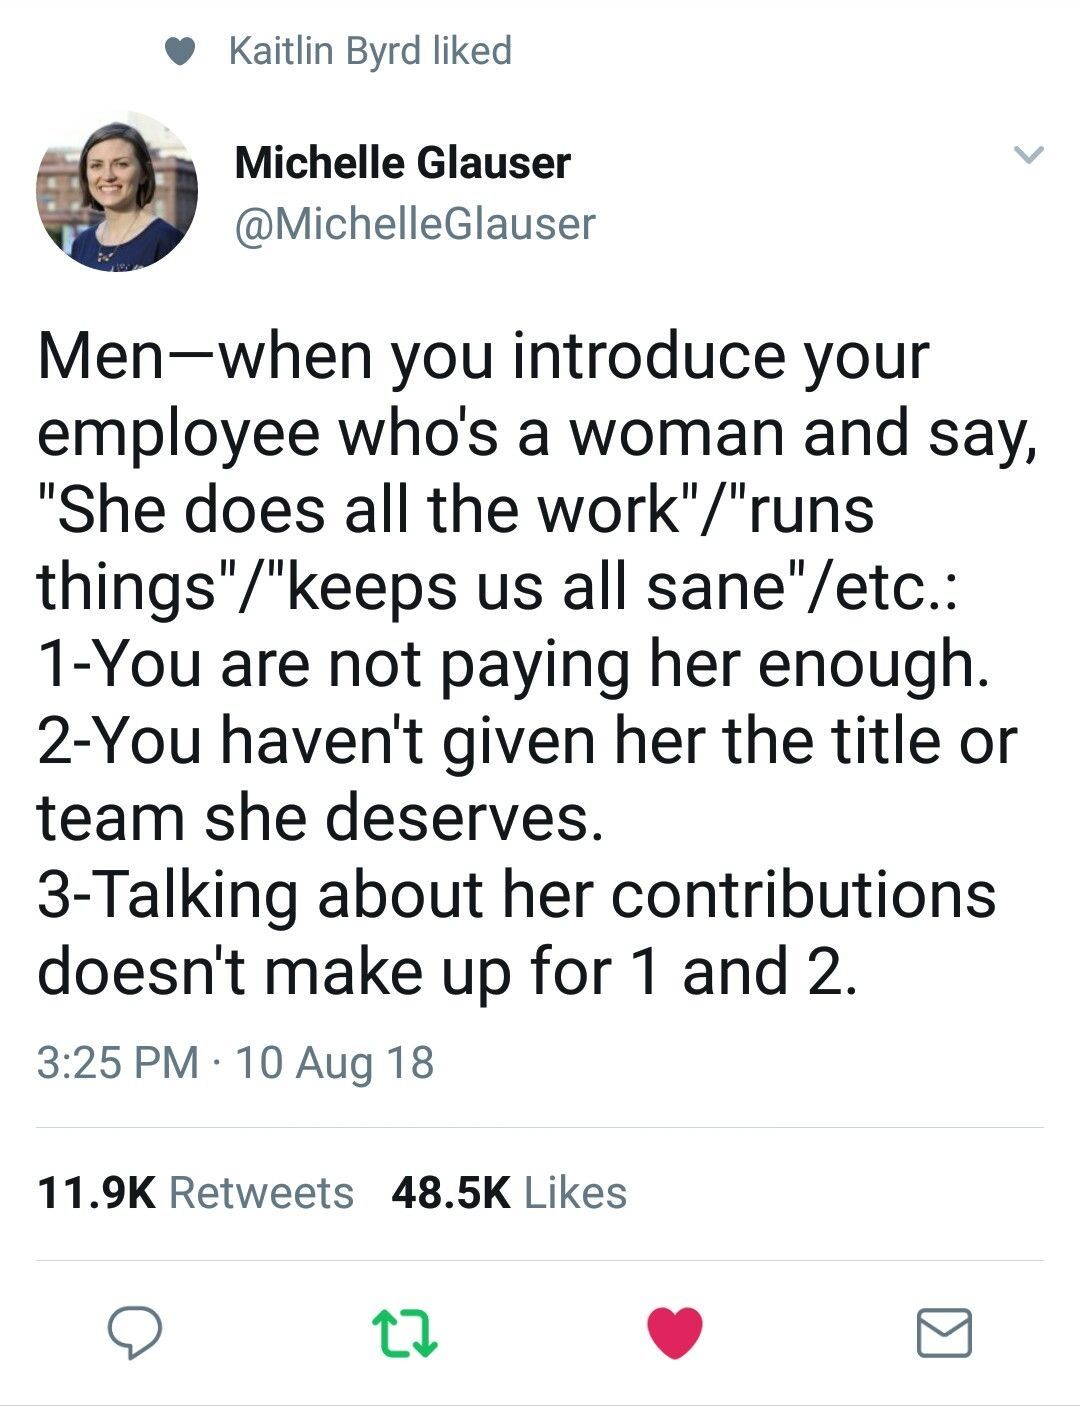 """A quote from Michelle Glauser. Men, when you introduce your employee who's a woman and say """"She does all the work""""/""""runs things""""/""""keeps us all sane""""/etc.: 1- You are not paying her enough. 2- You haven't given her the title or team she deserves. 3- Talking about her contributions doesn't make up for 1 and 2."""